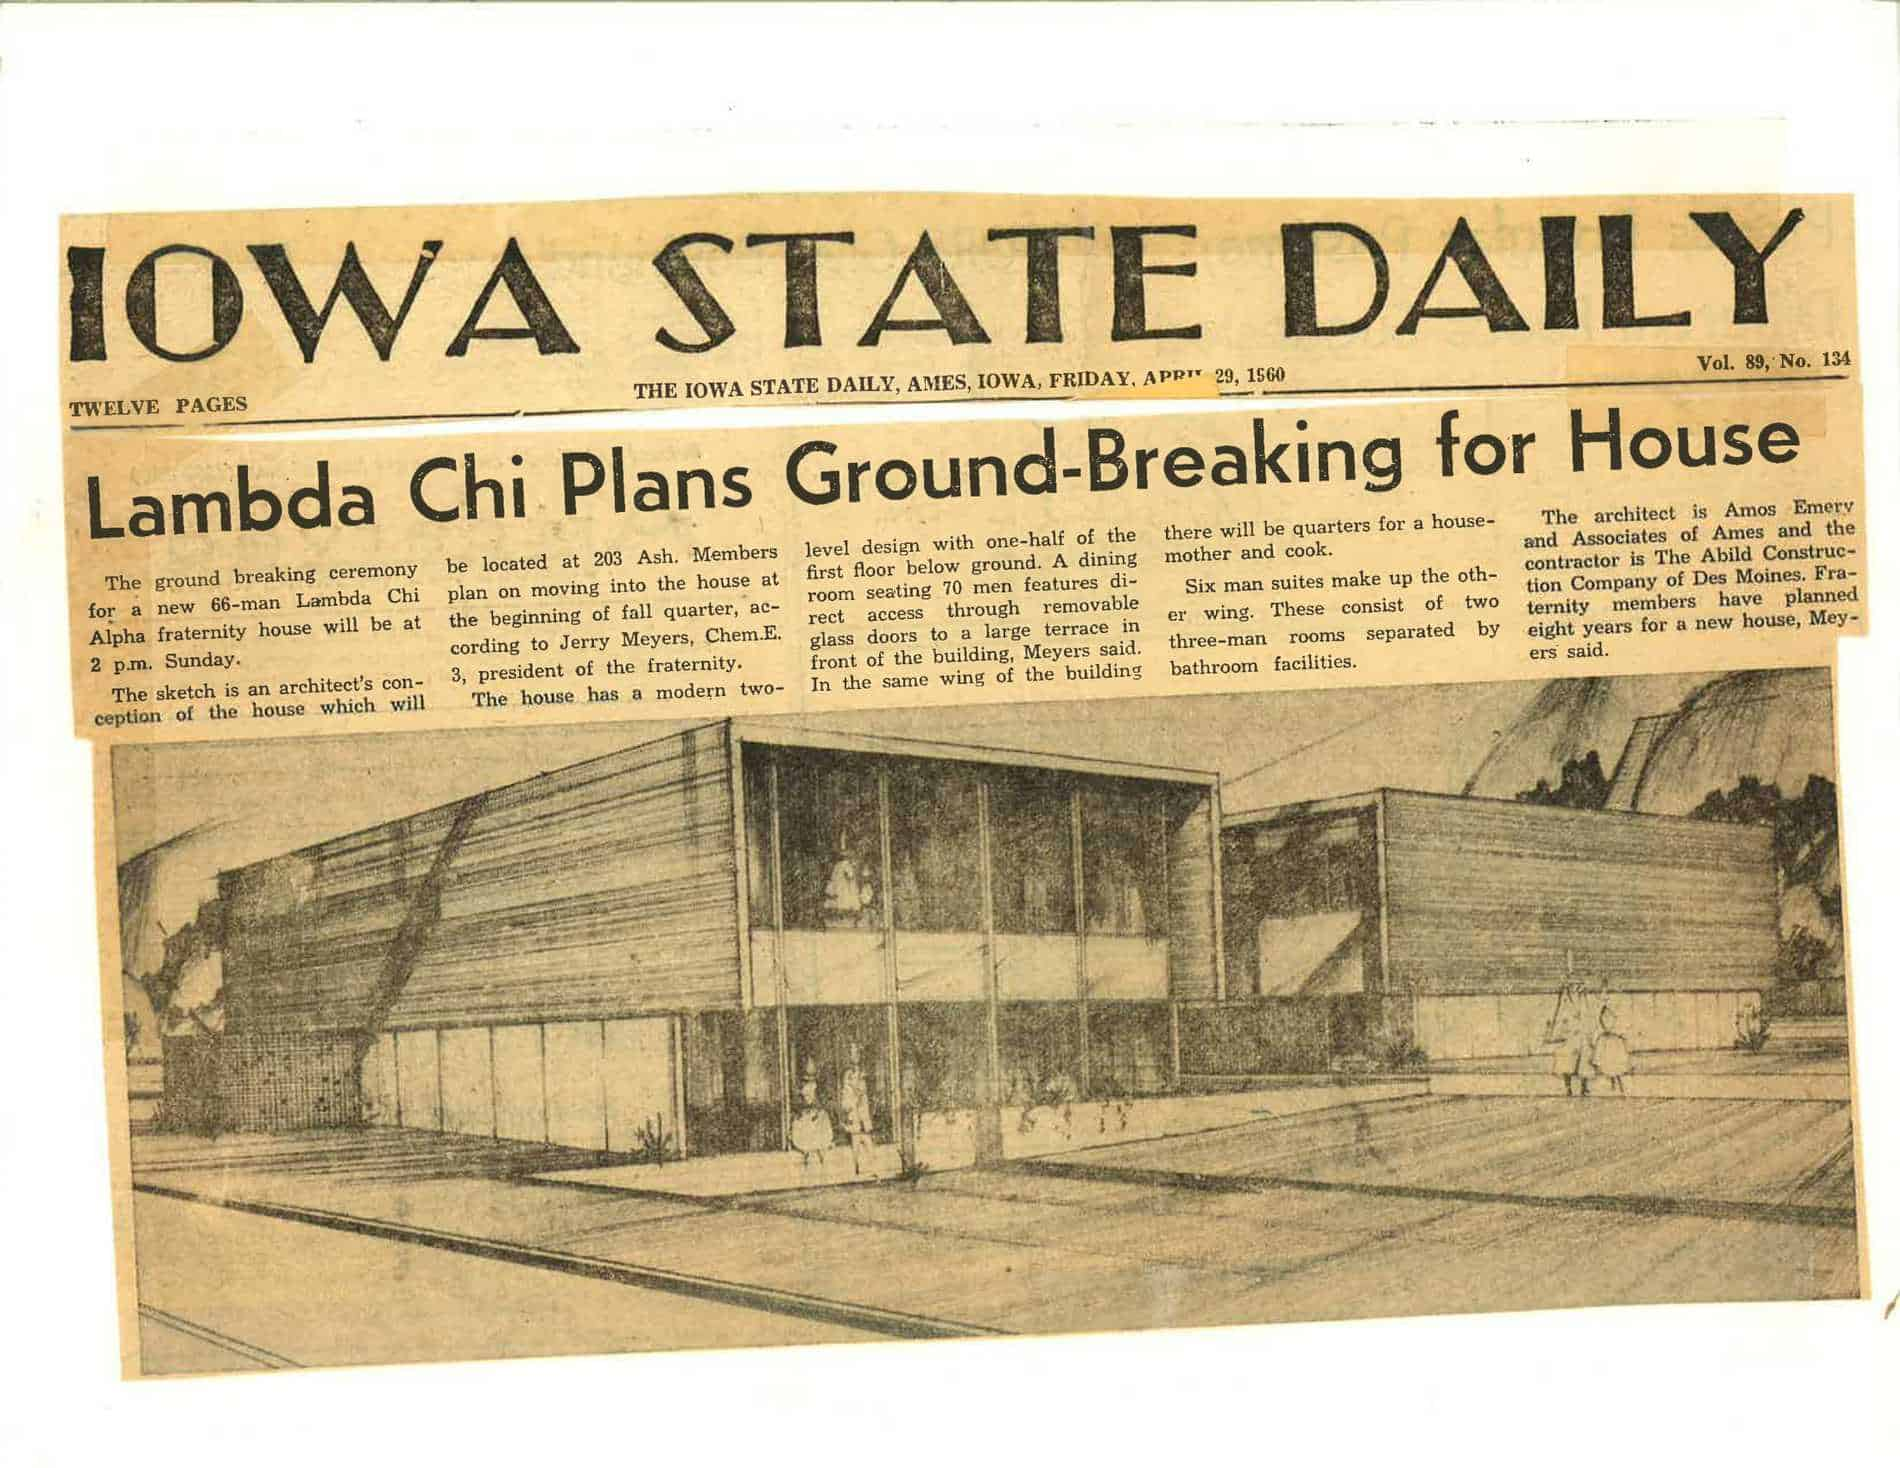 1960 April, 29 Iowa State Daily